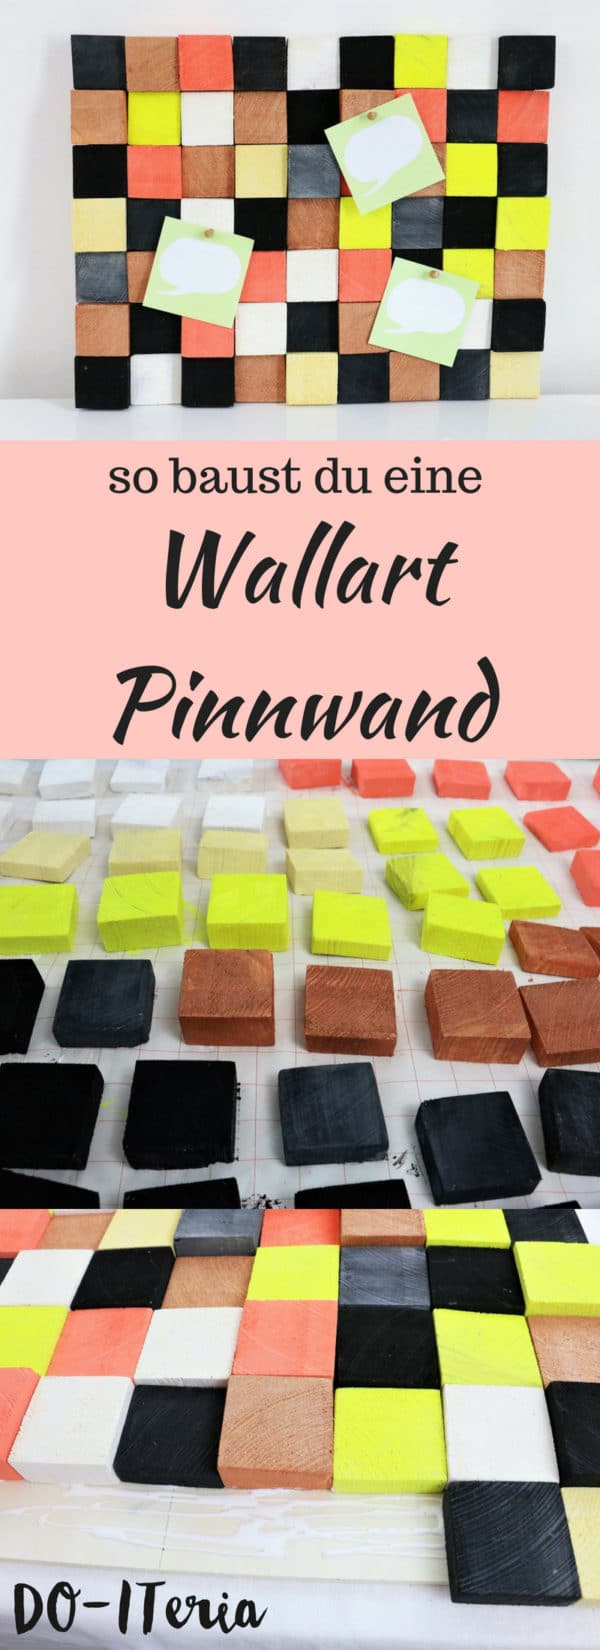 DIY Wallart Pinnwand